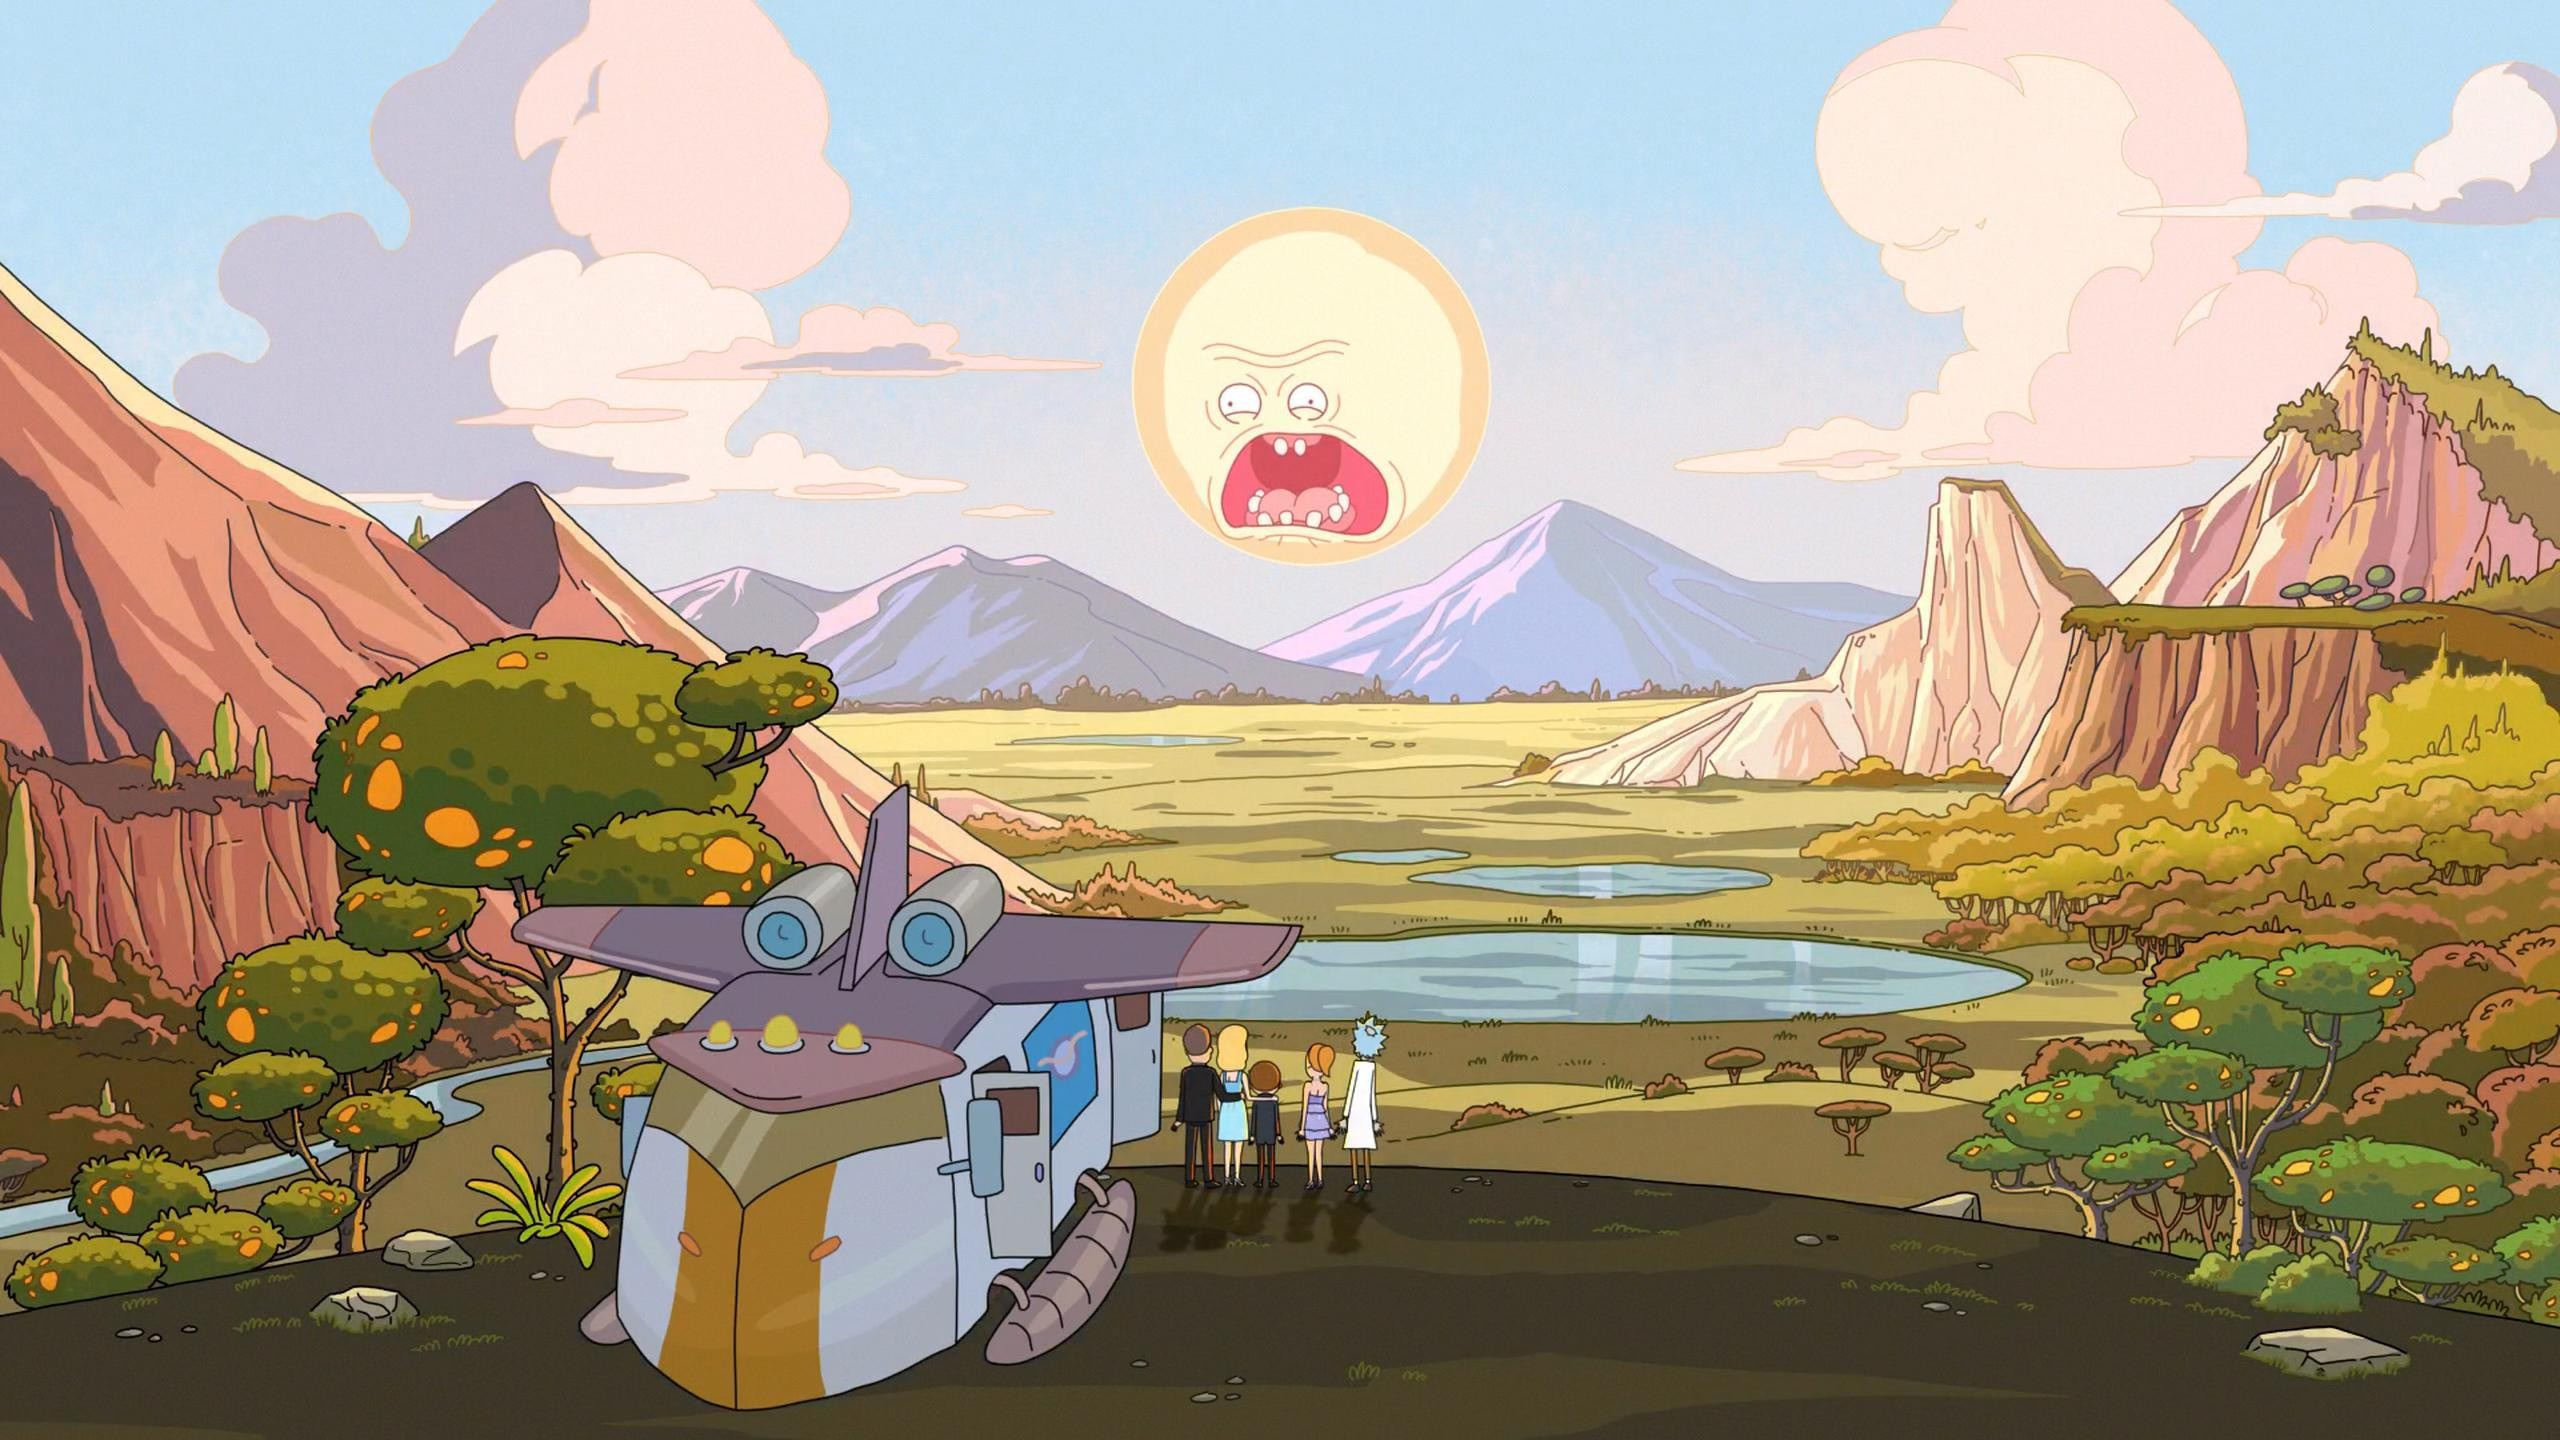 Rick And Morty Wallpaper ① Download Free Hd Wallpapers Of Rick And